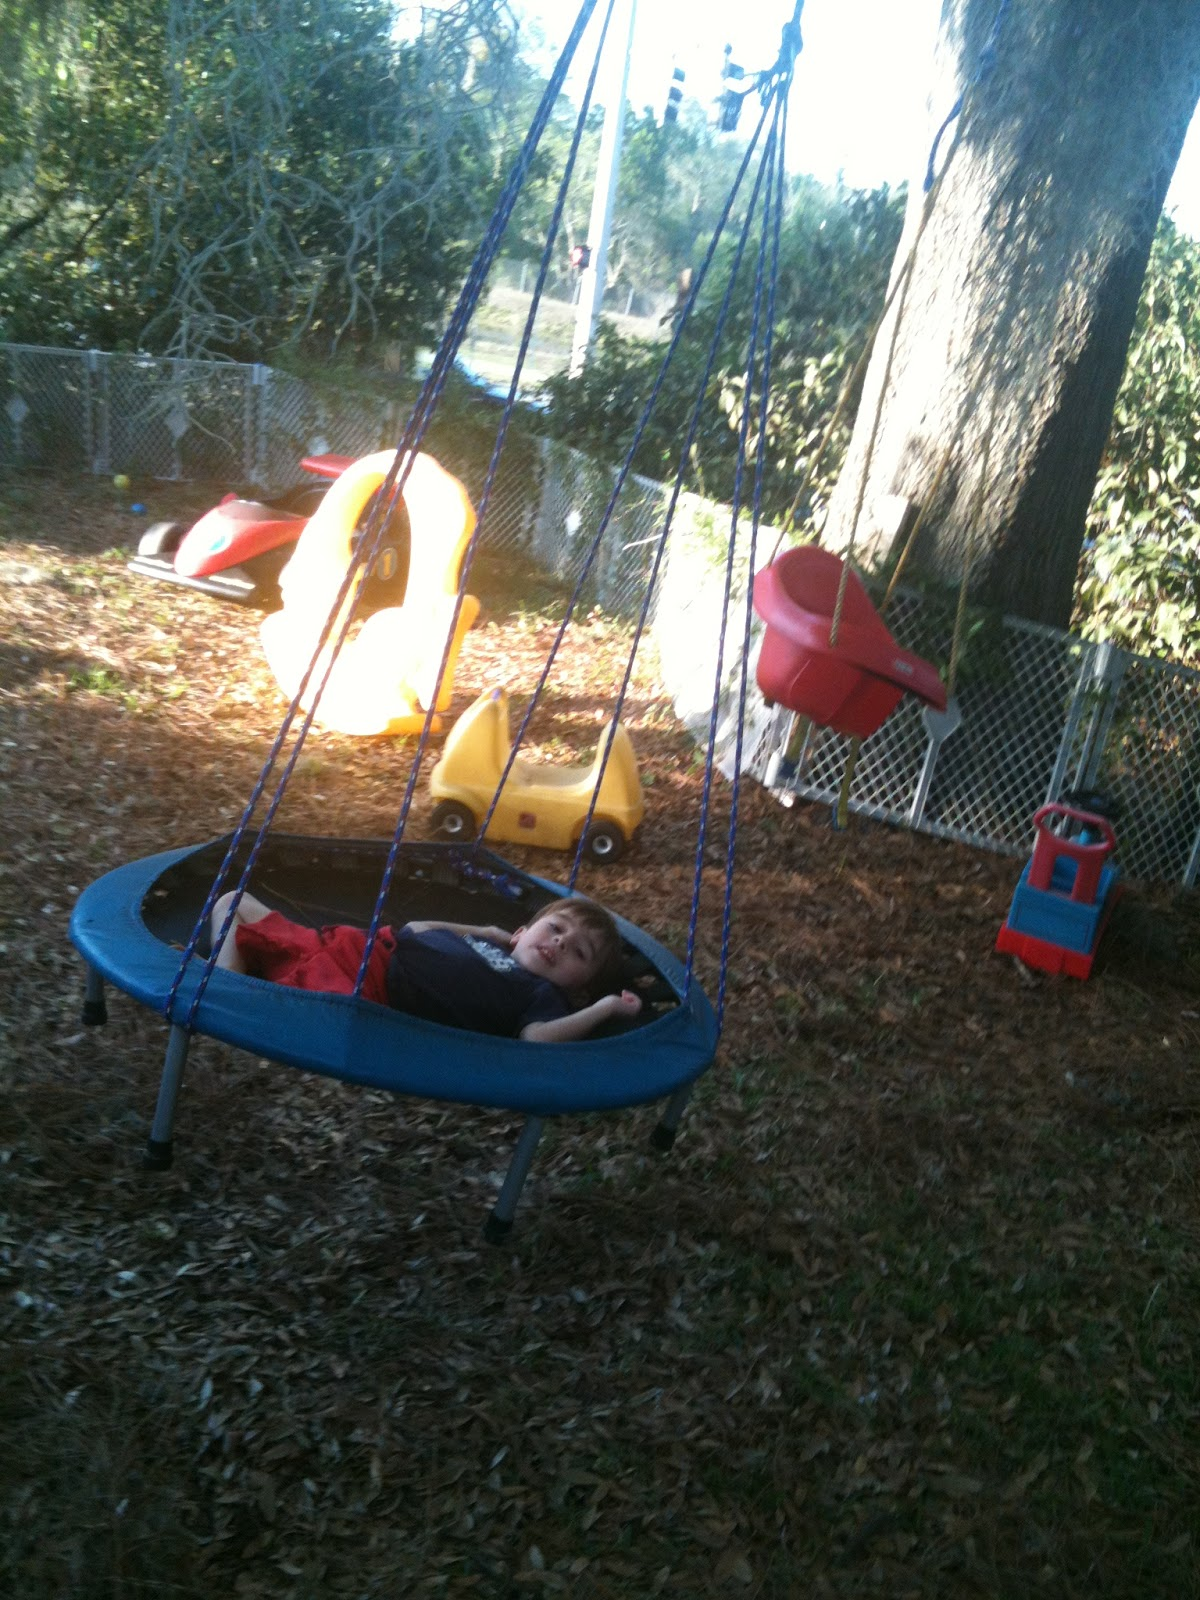 Trampo-swing, Tarzan swing & backyard play environment ...